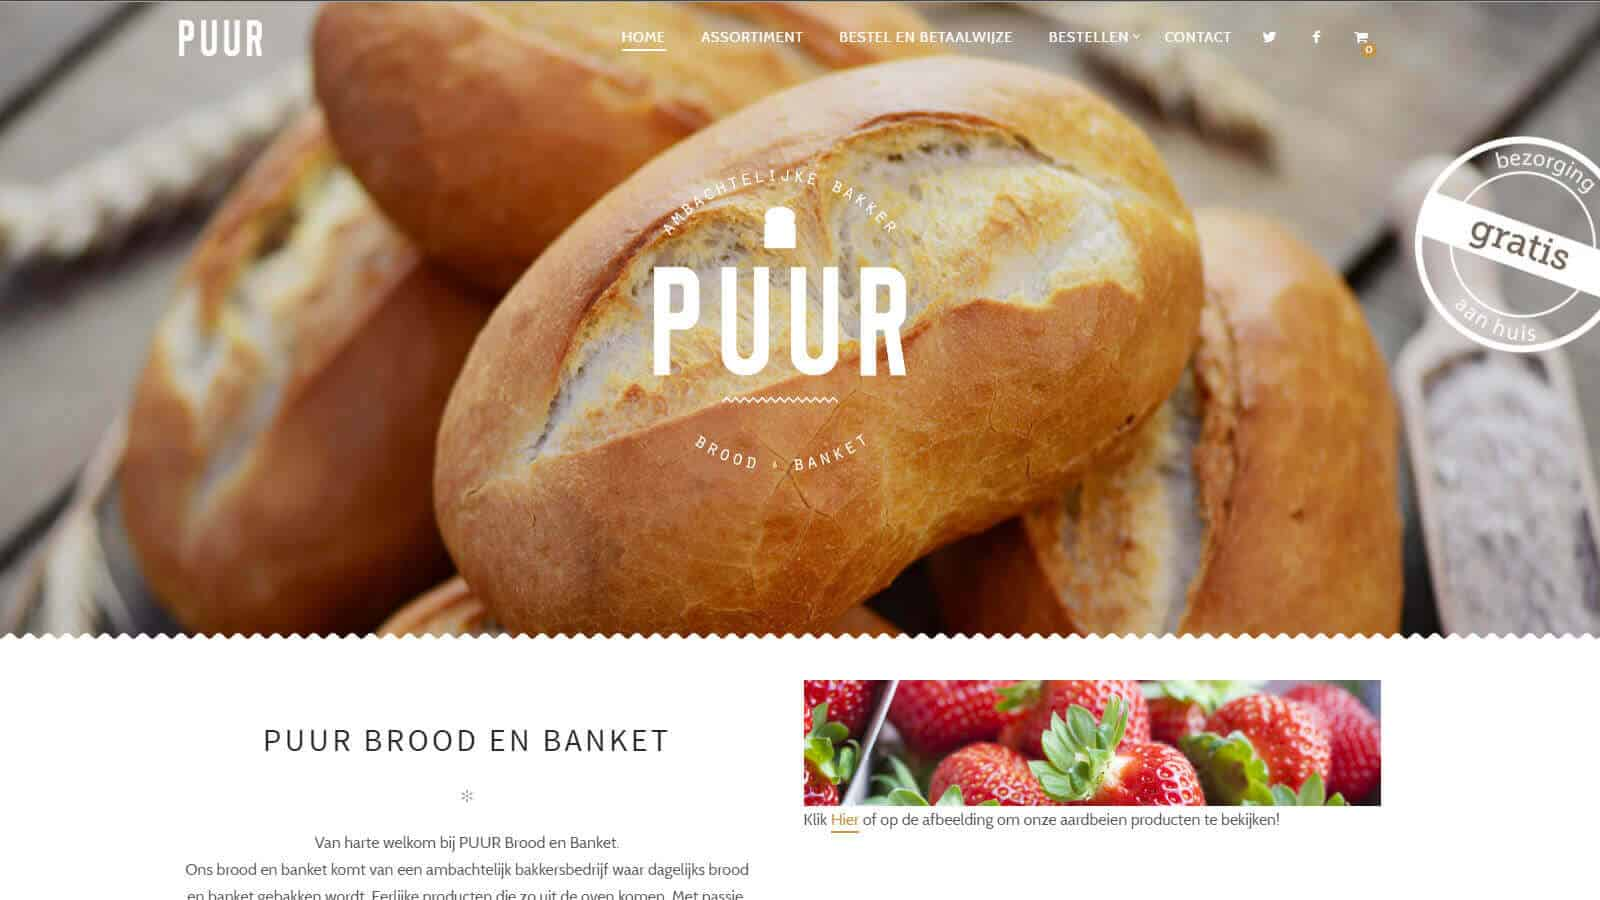 website puur puur brood en banket - puur - Puur Brood en Banket